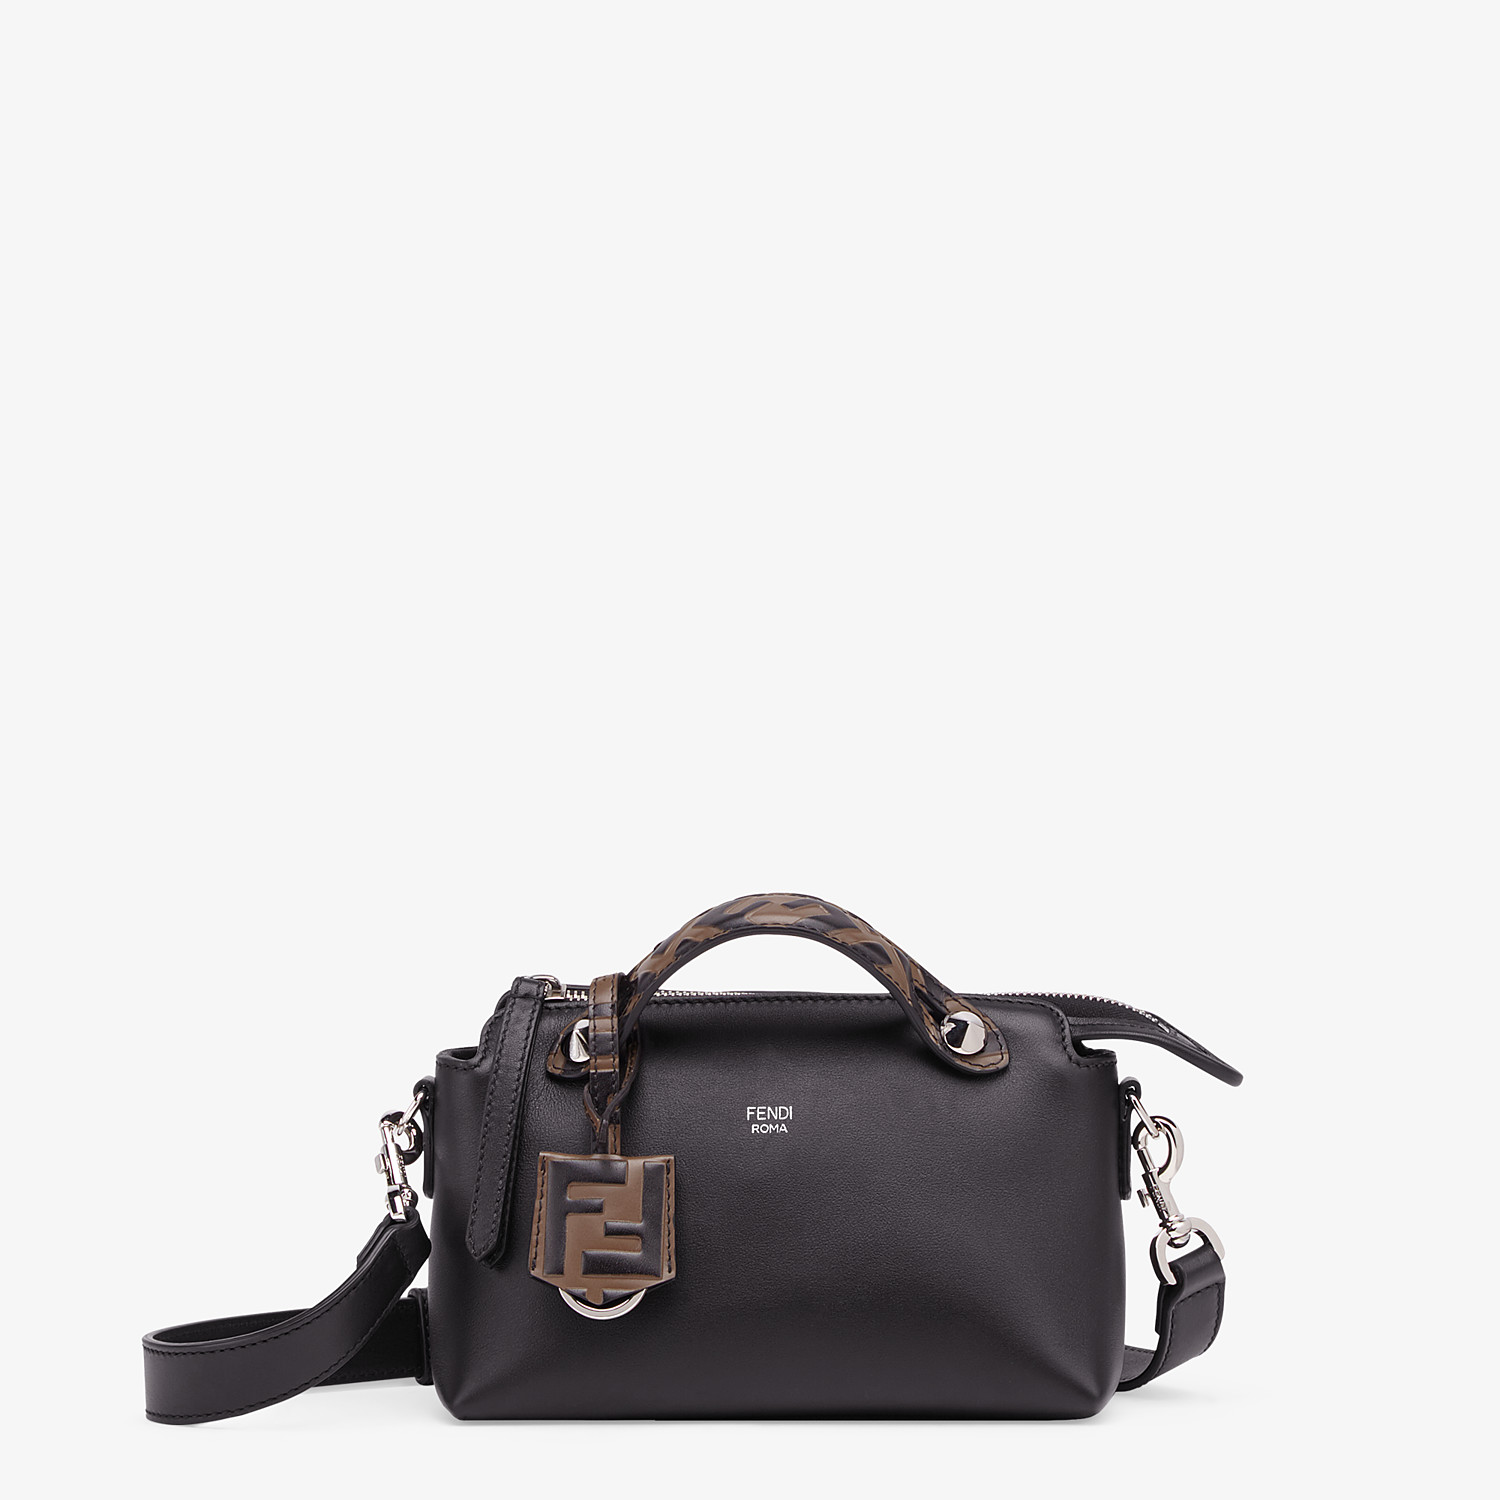 FENDI BY THE WAY MINI - Small black leather Boston bag - view 1 detail